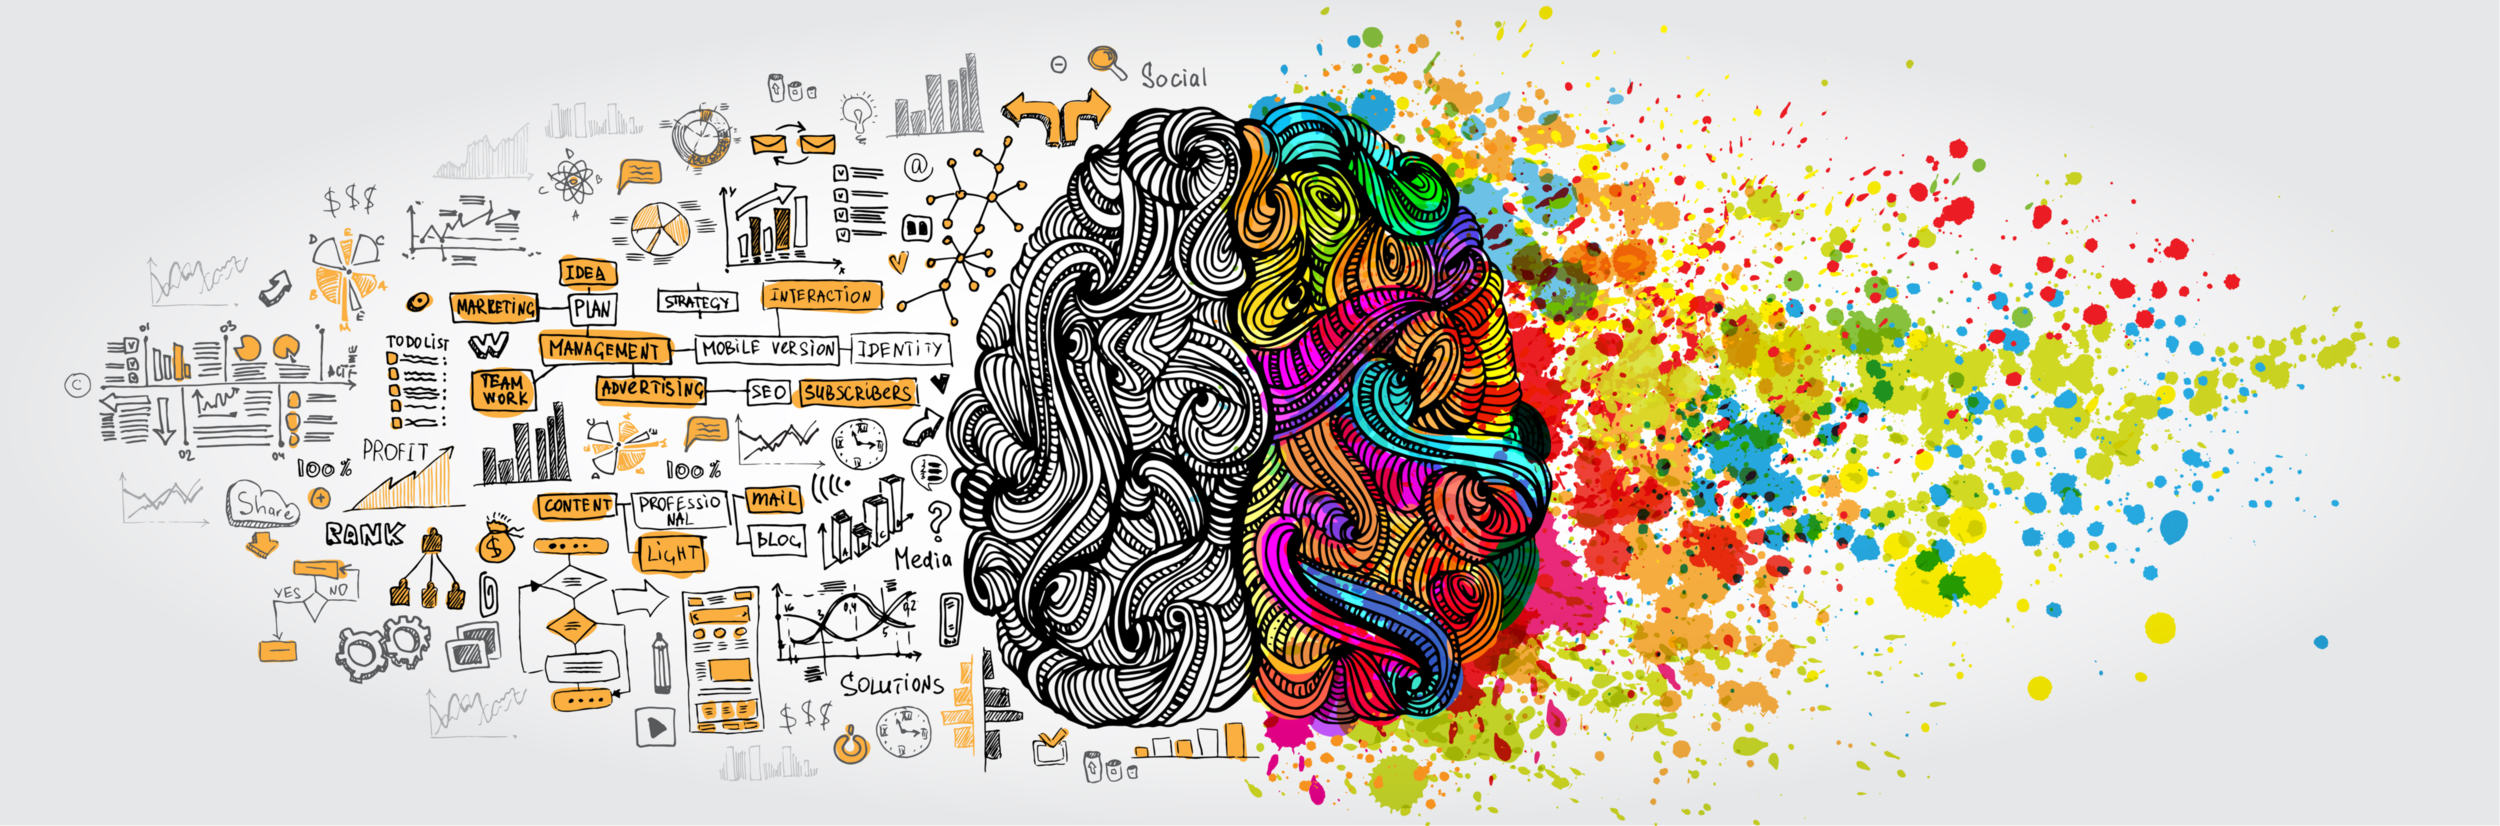 The 5 Most Important Things You Need To Know About Thought Leadership Marketing